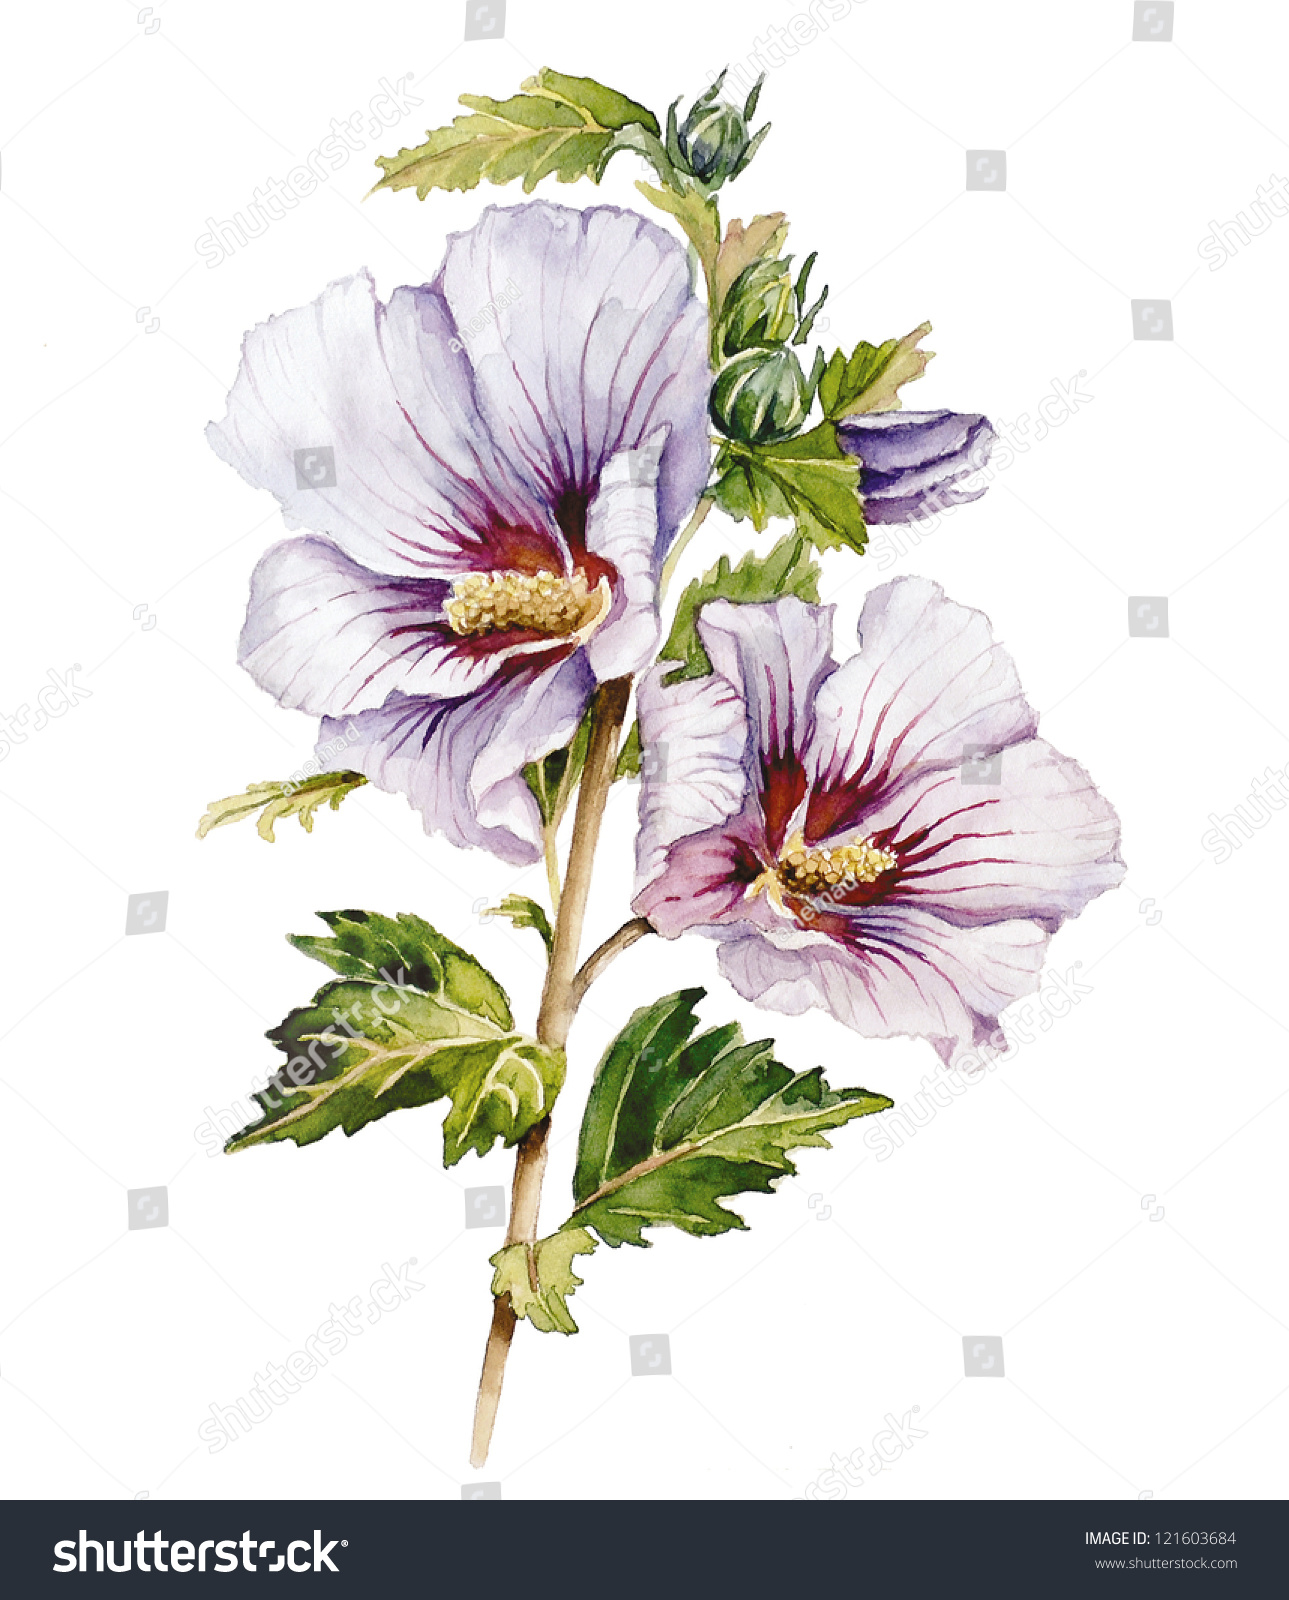 Watercolor Drawing Hibiscus Flower Stock Illustration 121603684